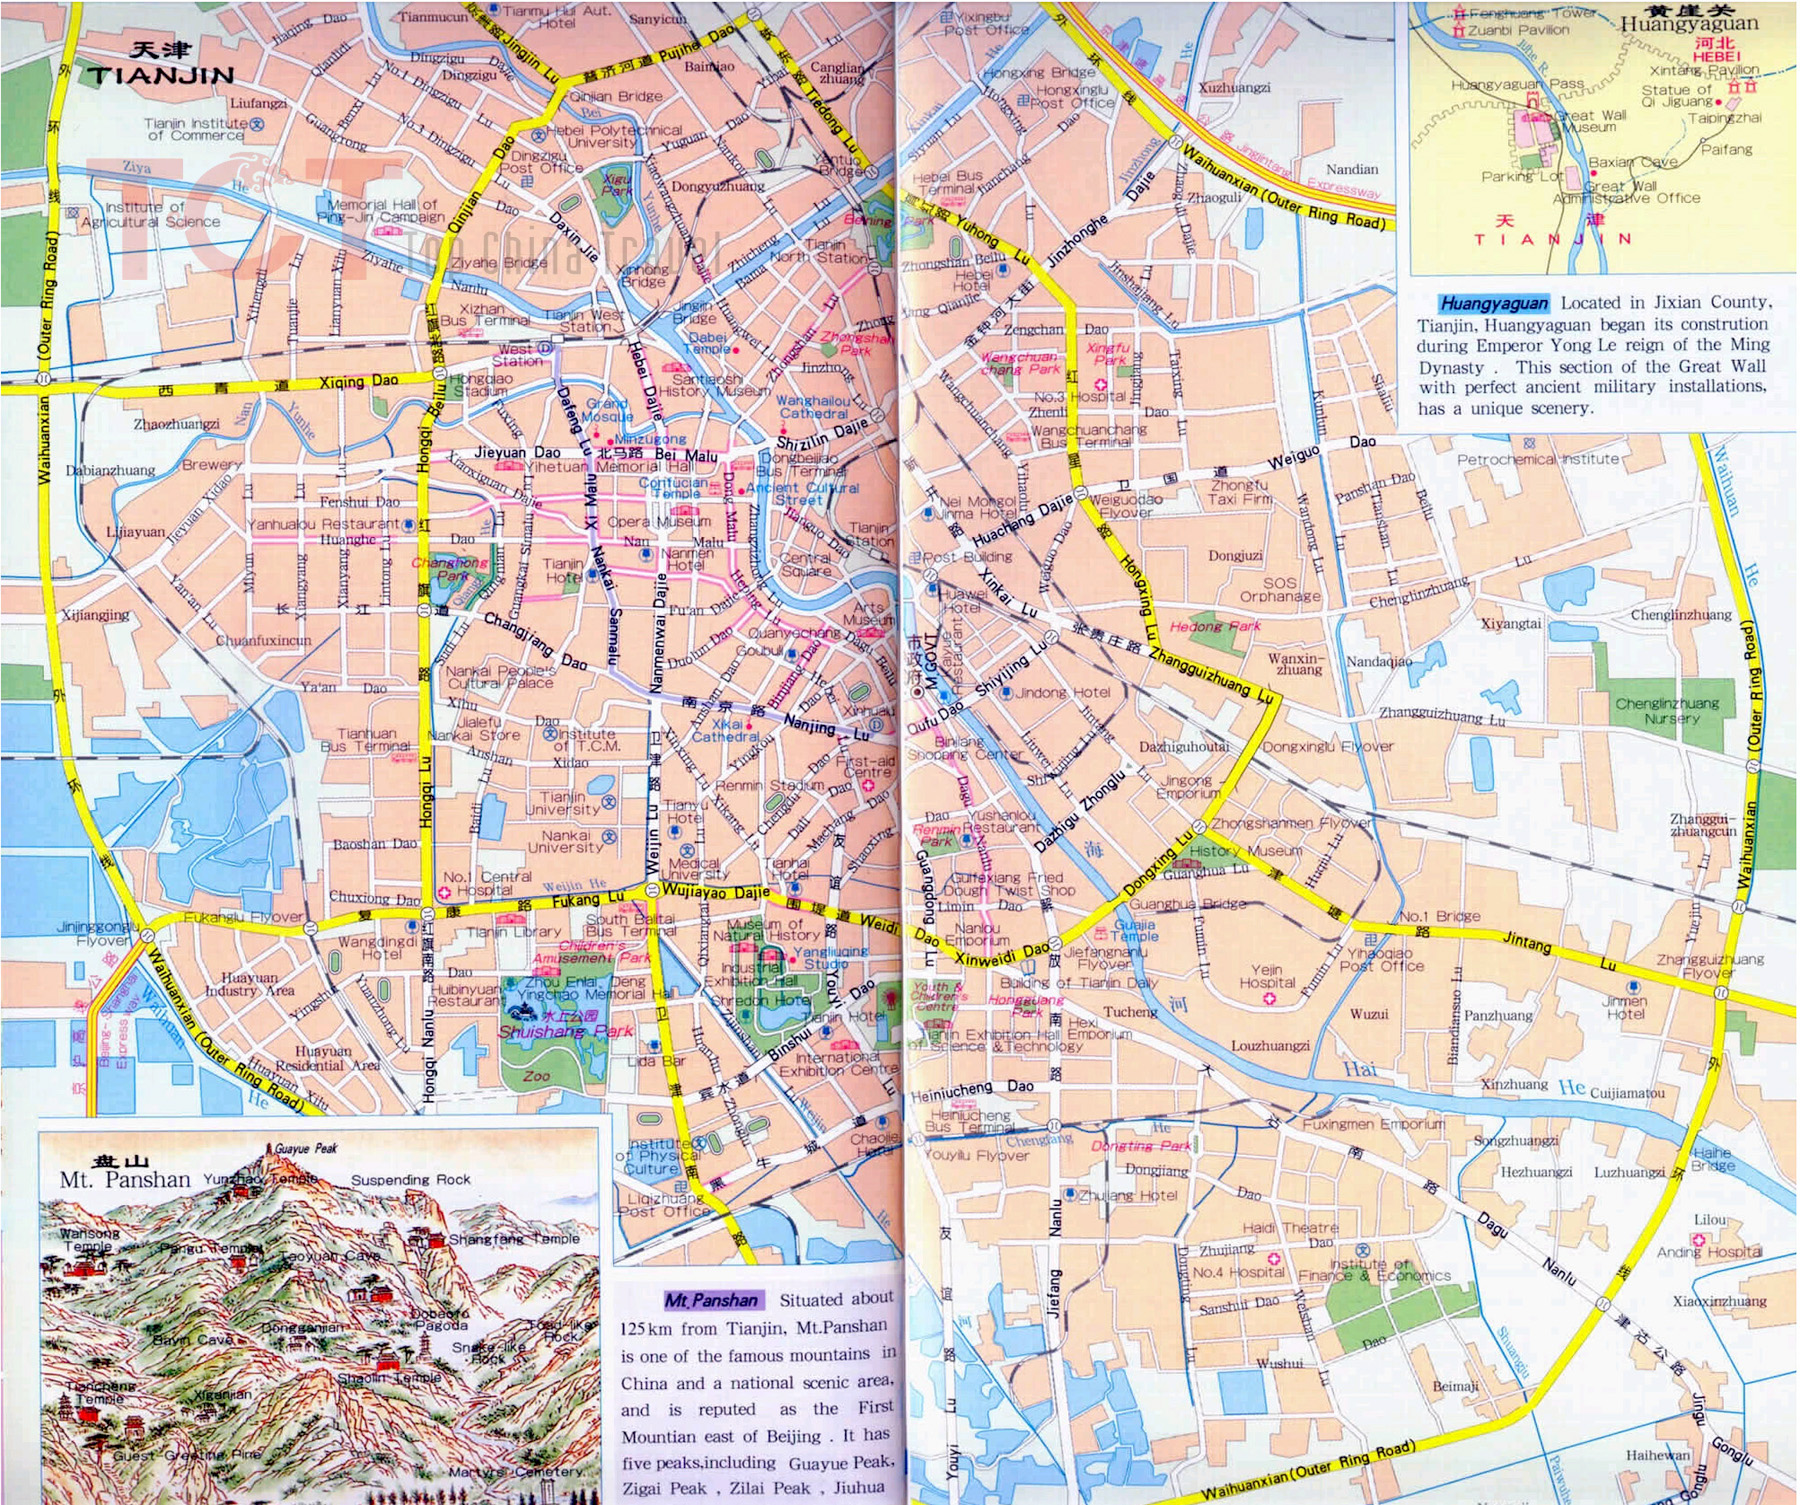 Map of Tianjin